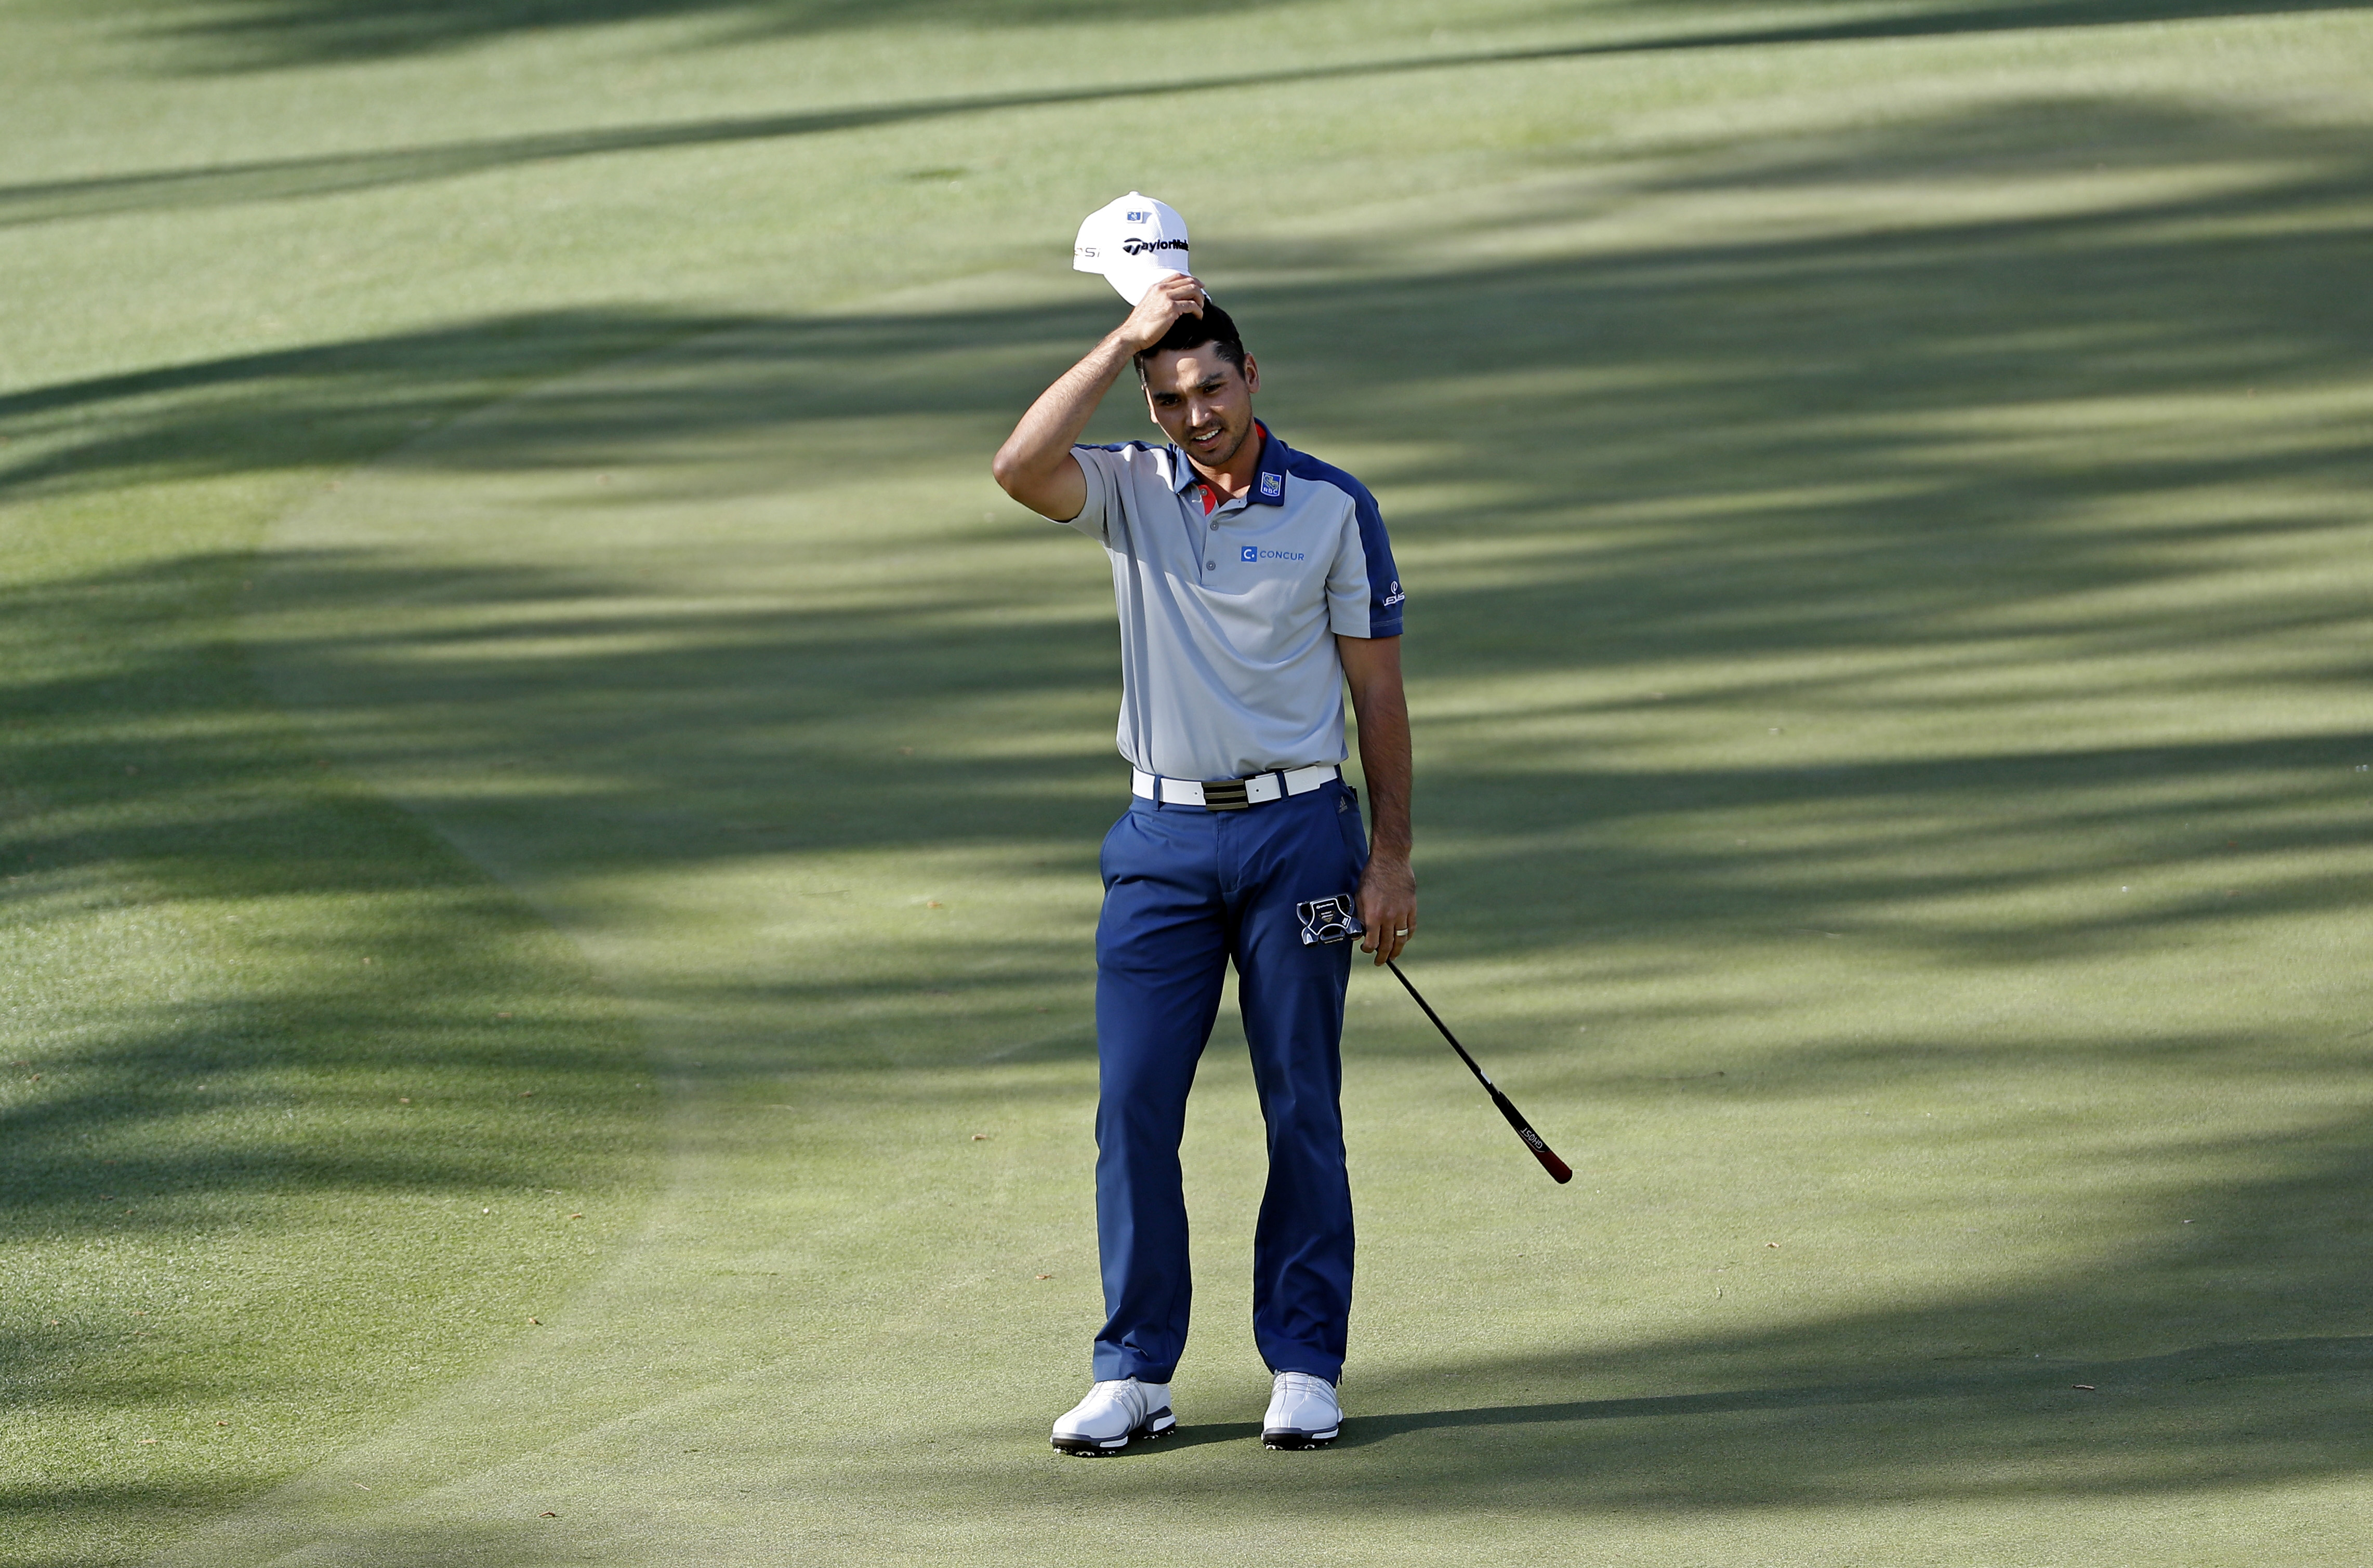 Jason Day, of Australia, reacts to his missed birdie putt on the 15th hole during the first round of the Masters golf tournament Thursday, April 7, 2016, in Augusta, Ga. (AP Photo/David J. Phillip)